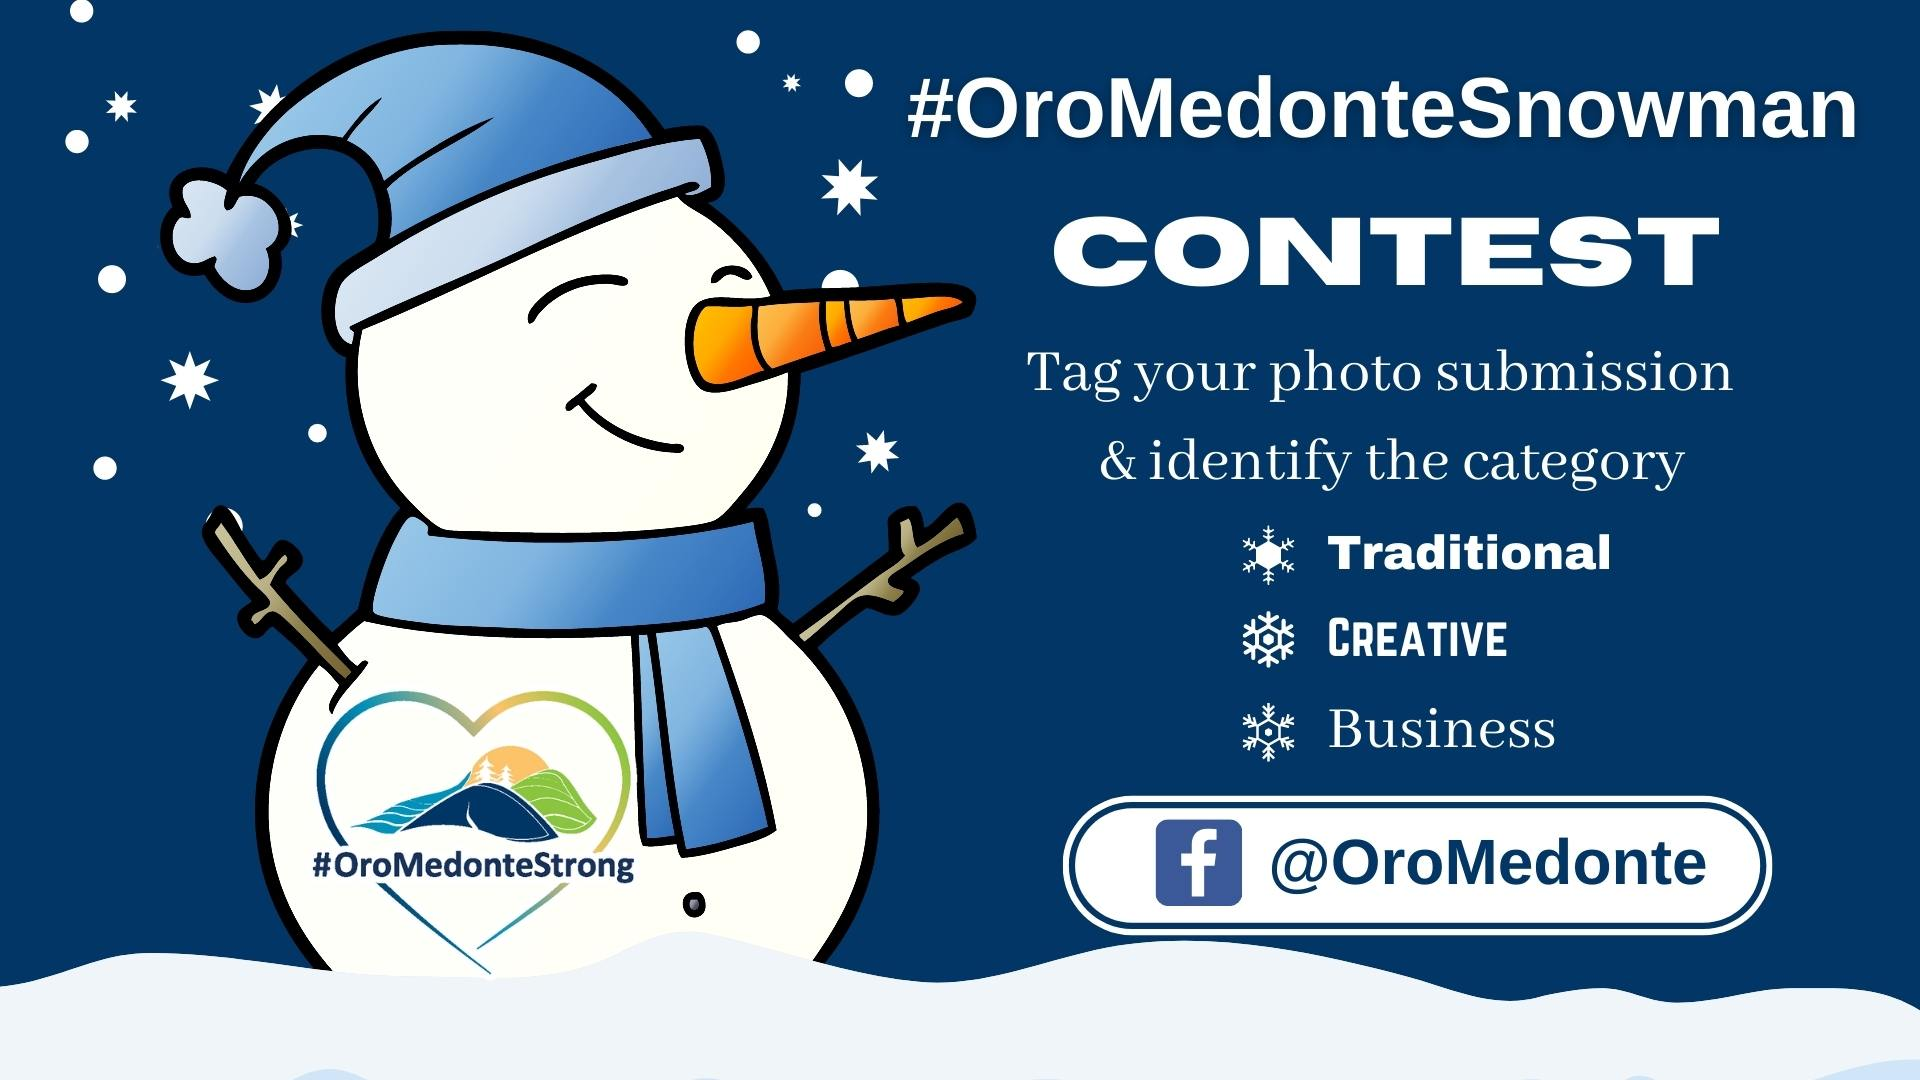 OroMedonteSnowman Website Banner.jpg